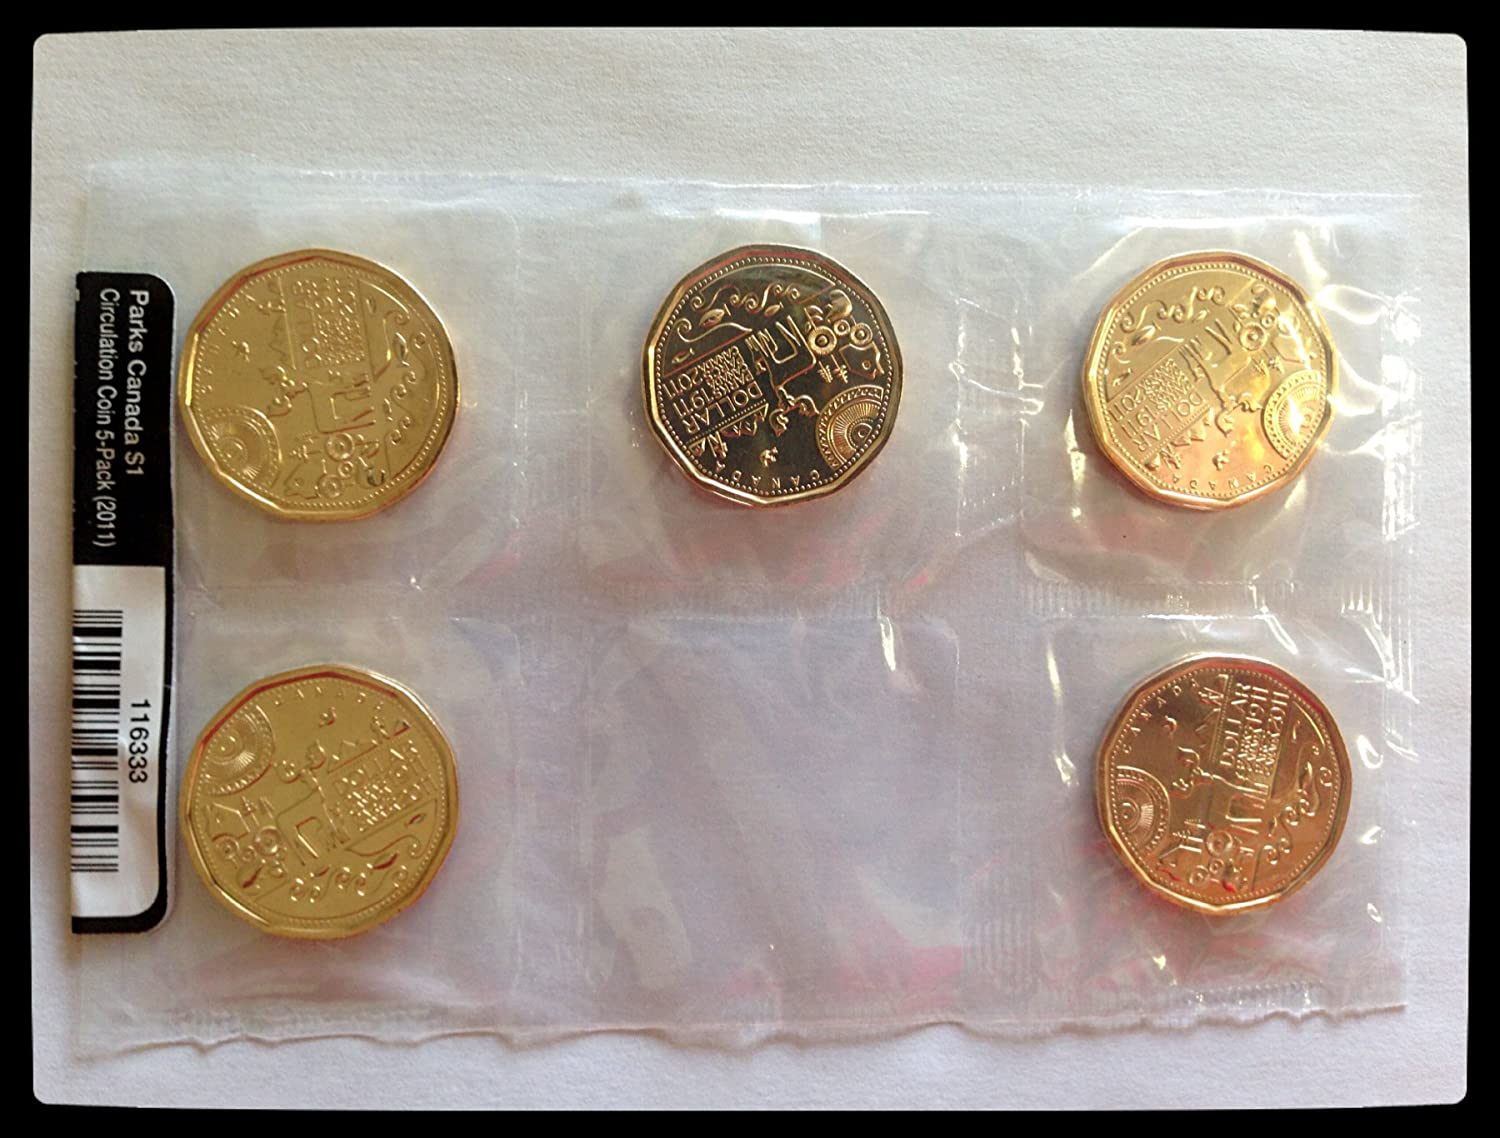 2011 Canada Uncirculated Set of Coins